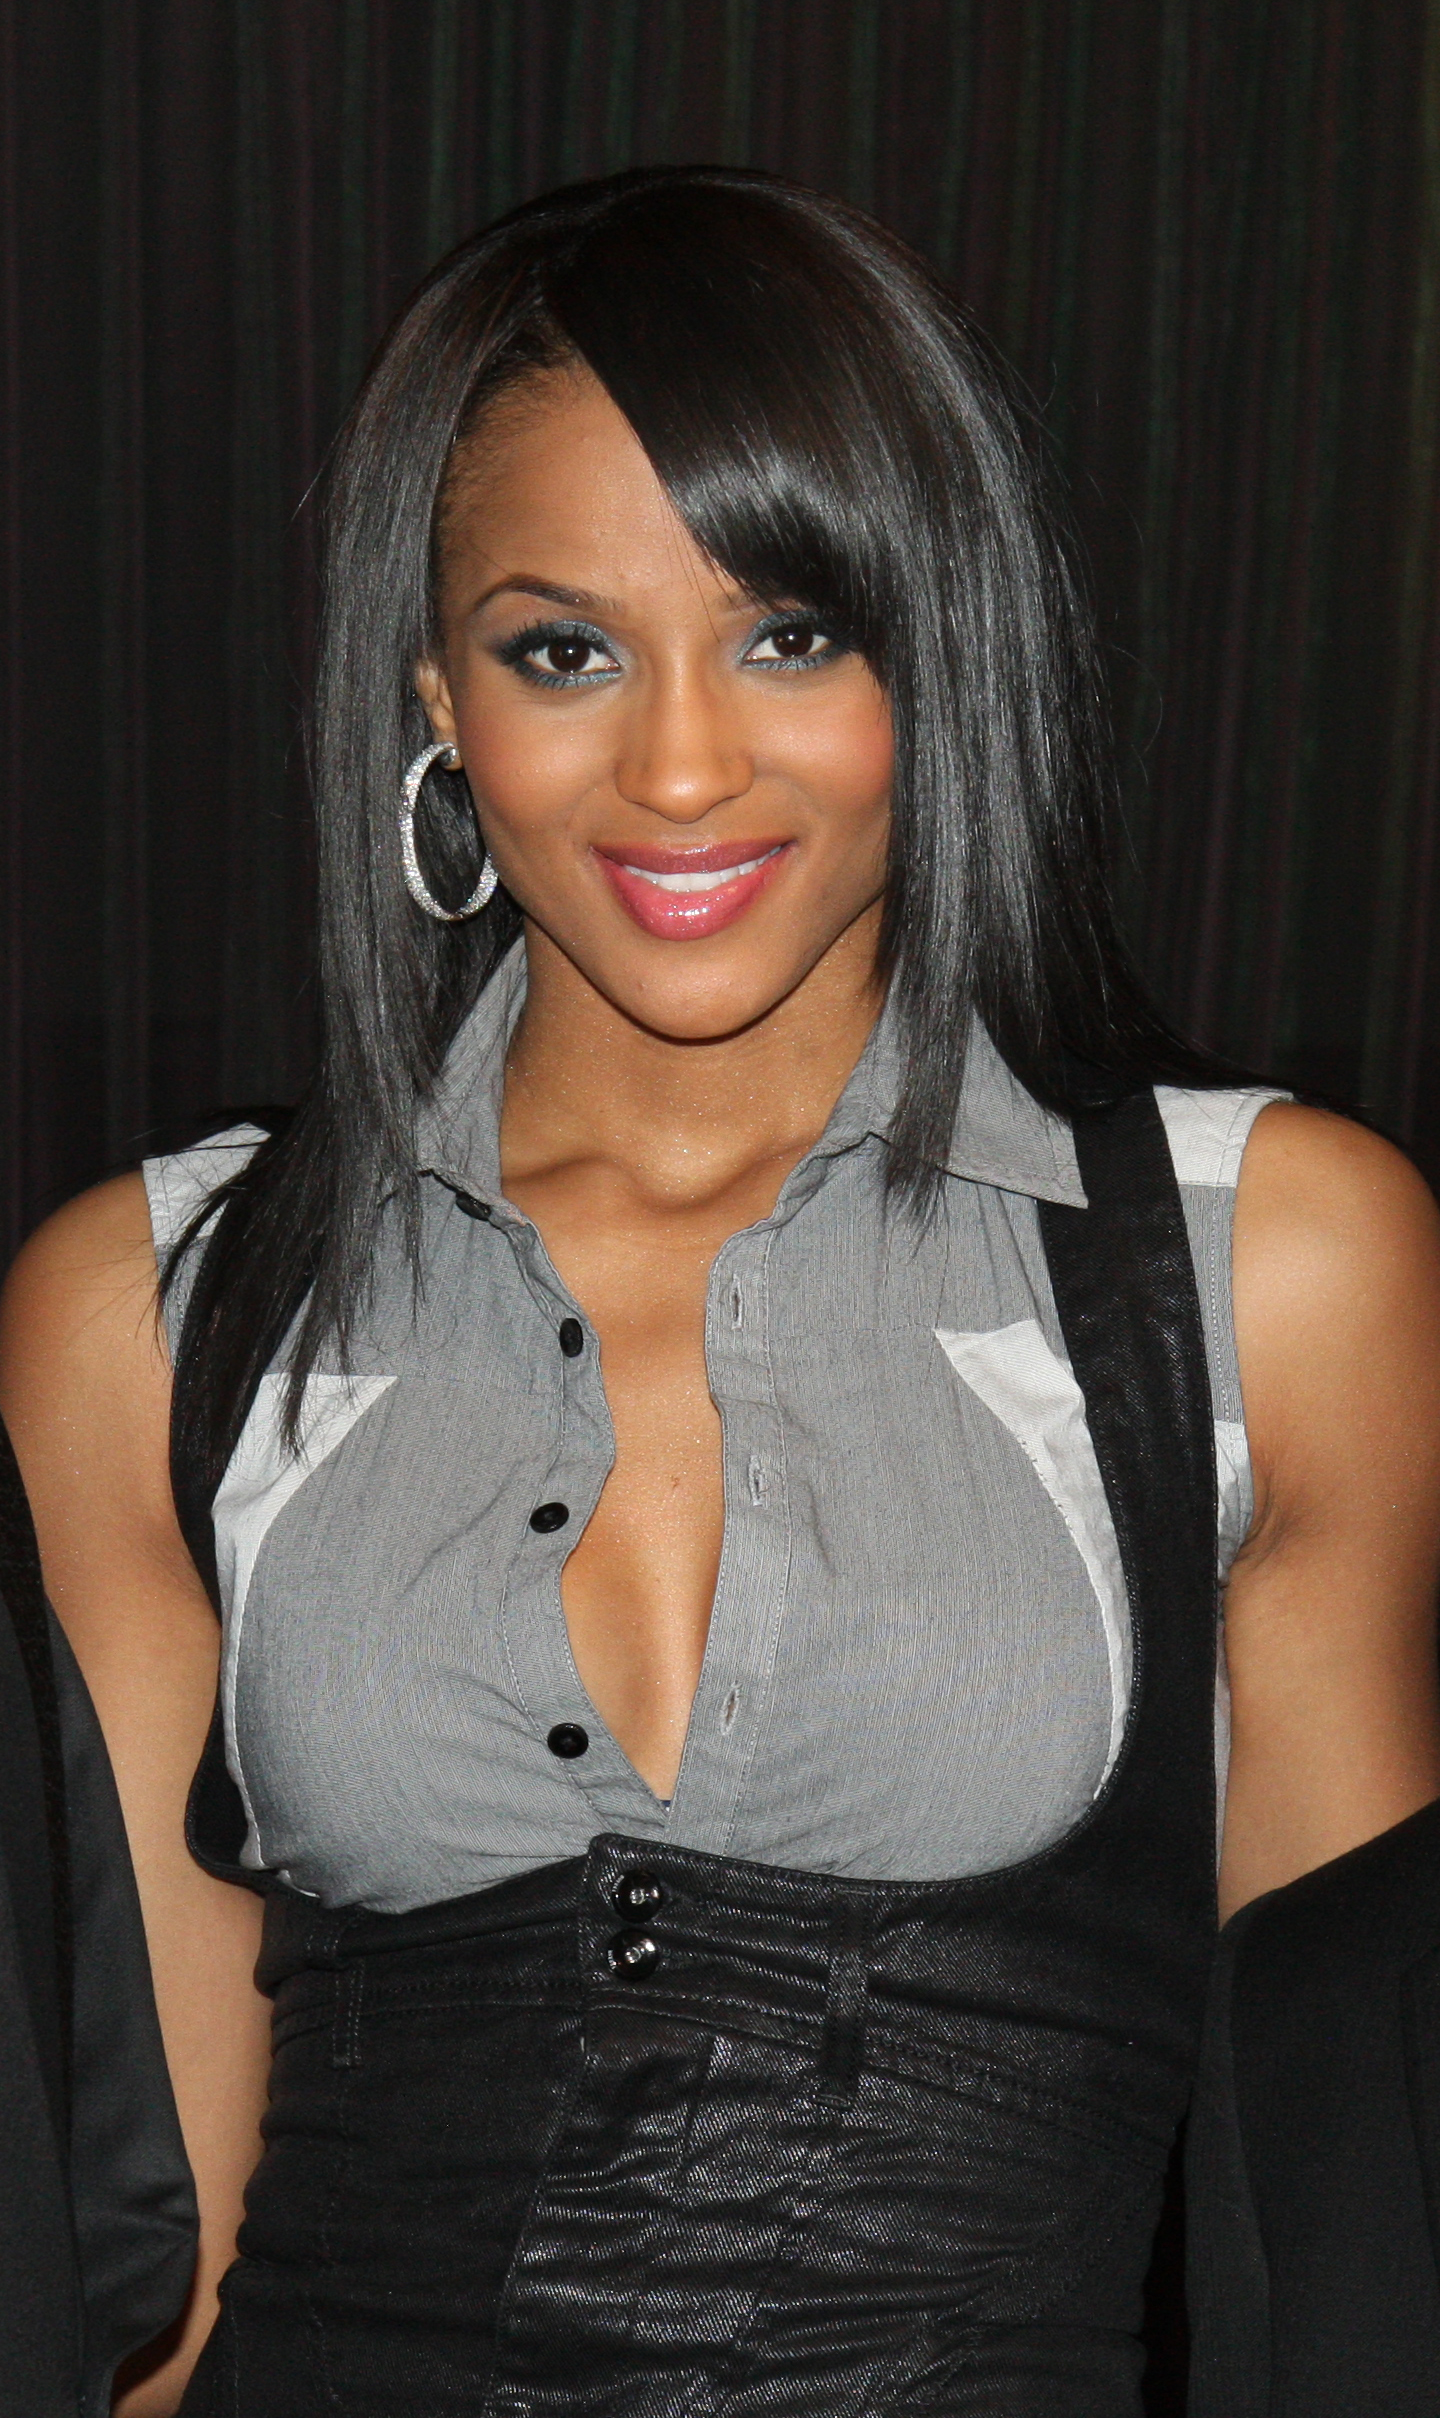 Ciara - Wikipedia, the free encyclopedia